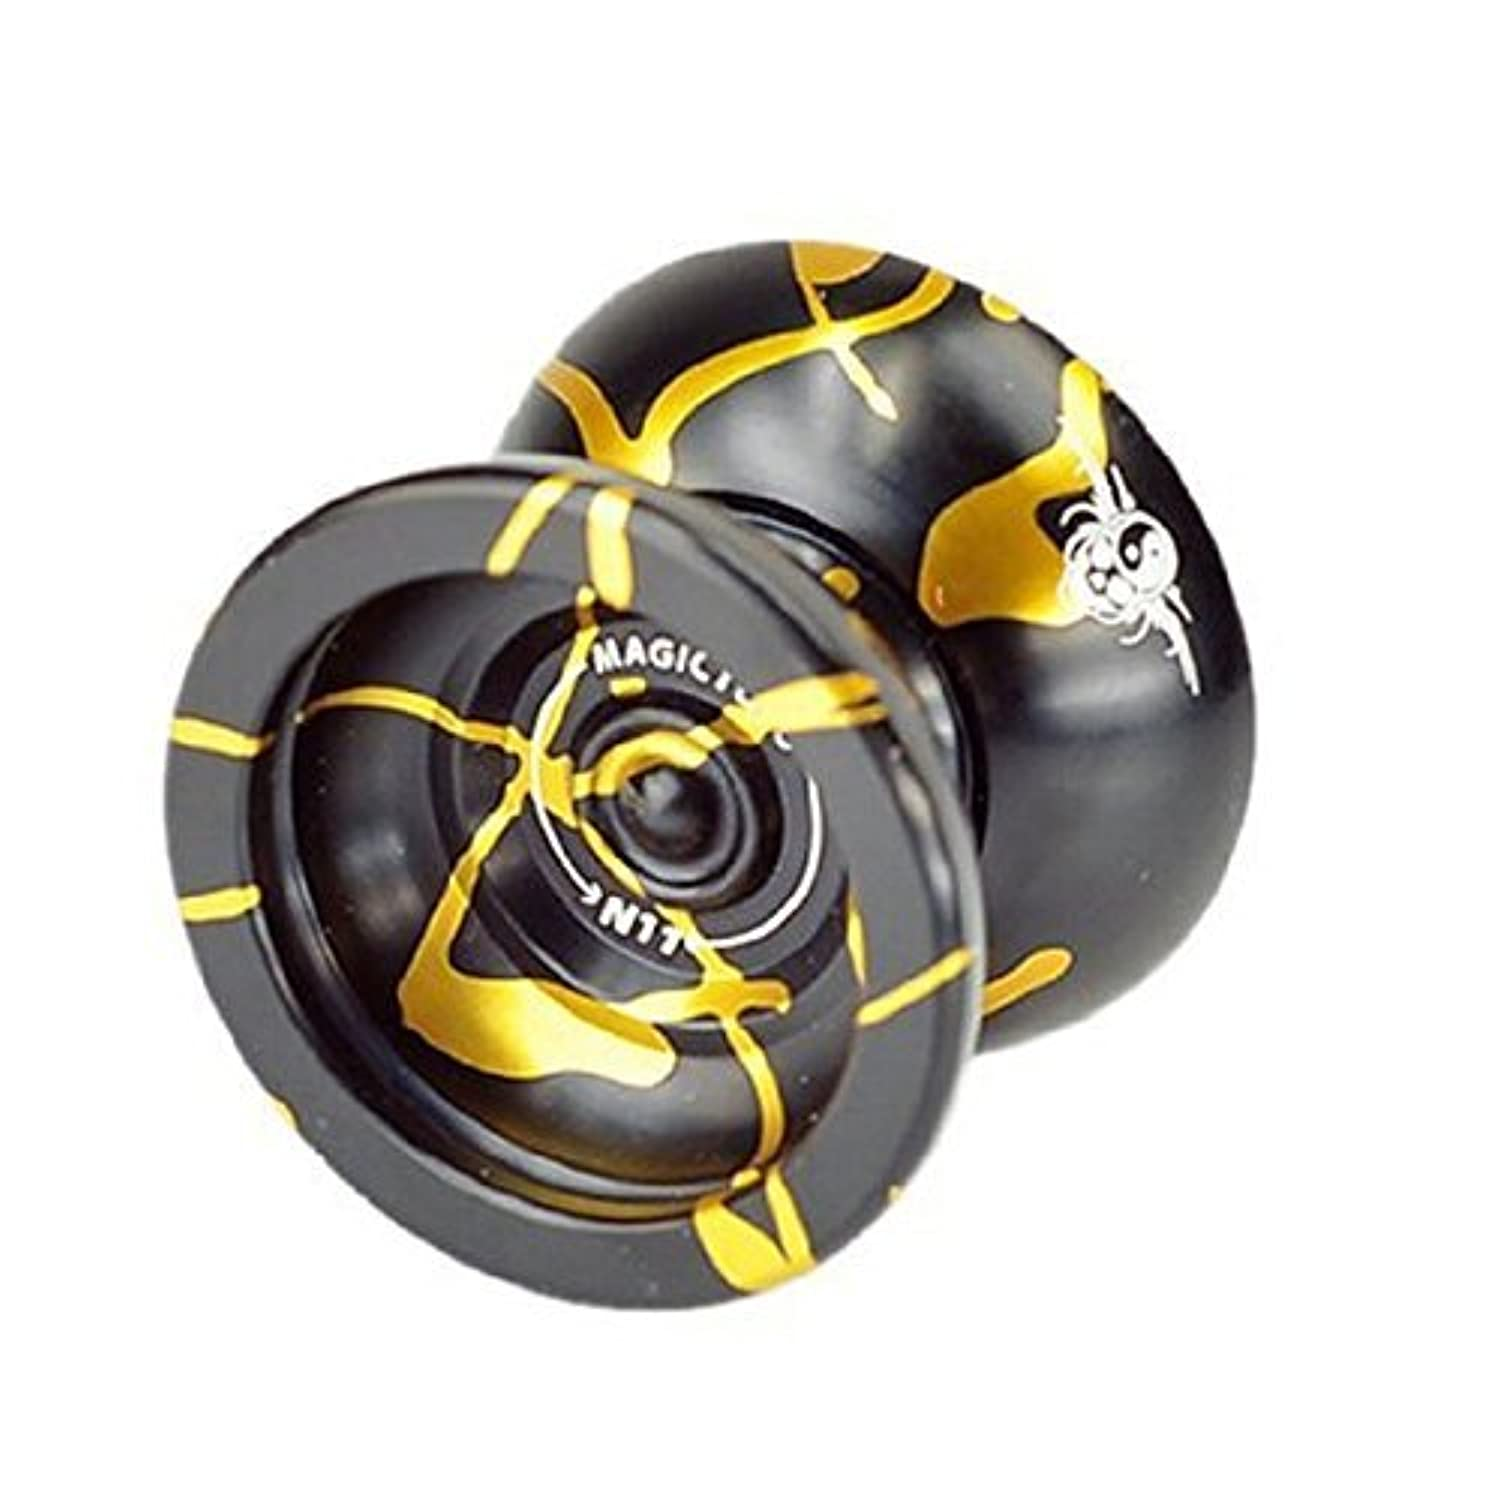 Fentac Magic YOYO N11 Alloy Aluminum Yo-Yo Professional YoYo Toy Black&Glod [並行輸入品]